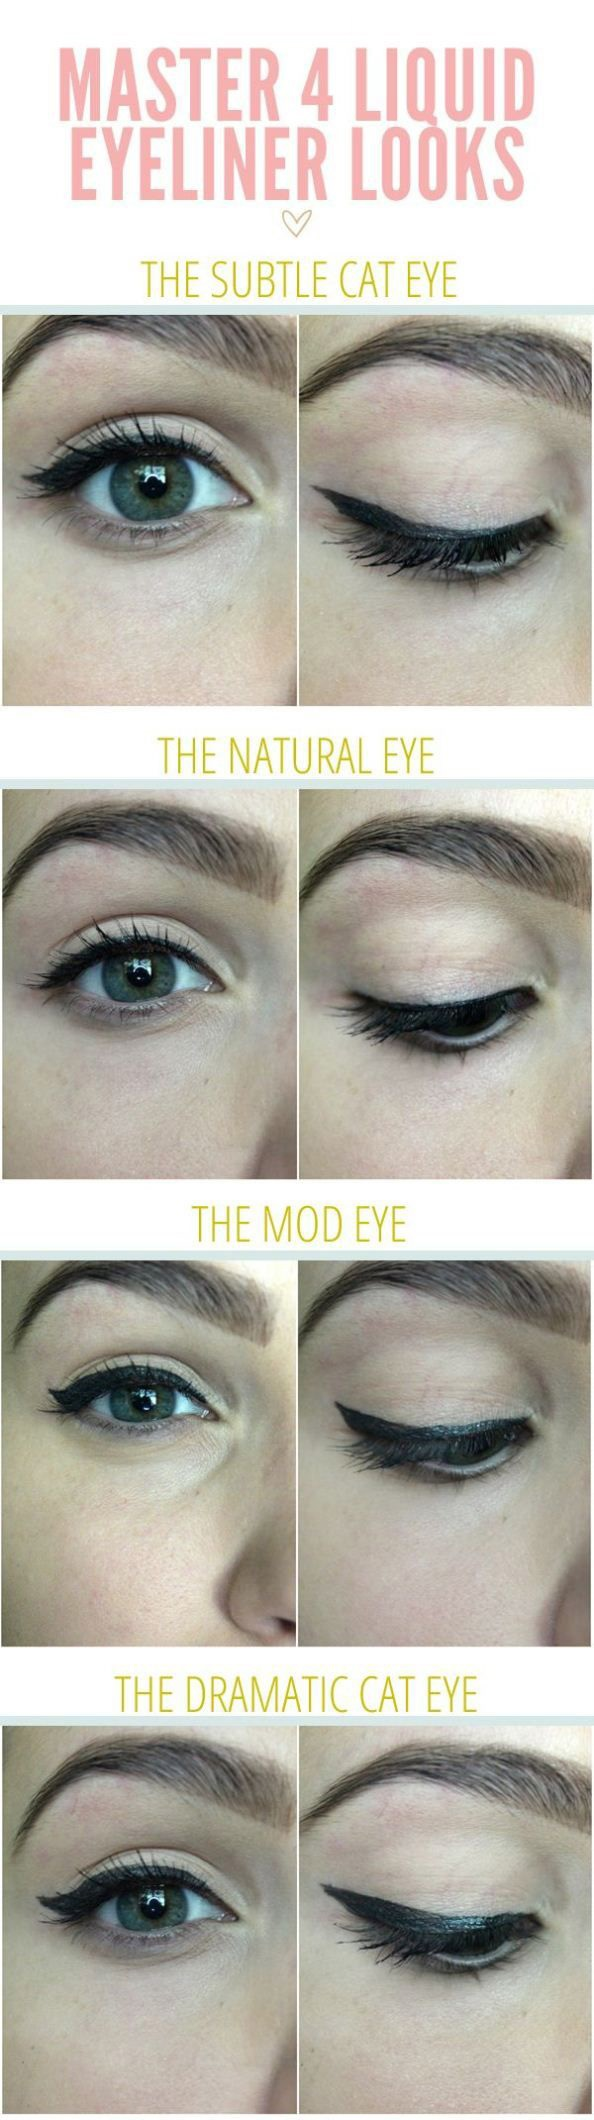 how-to-apply-liquid-eyeliner-step-by-step-tutorial-4